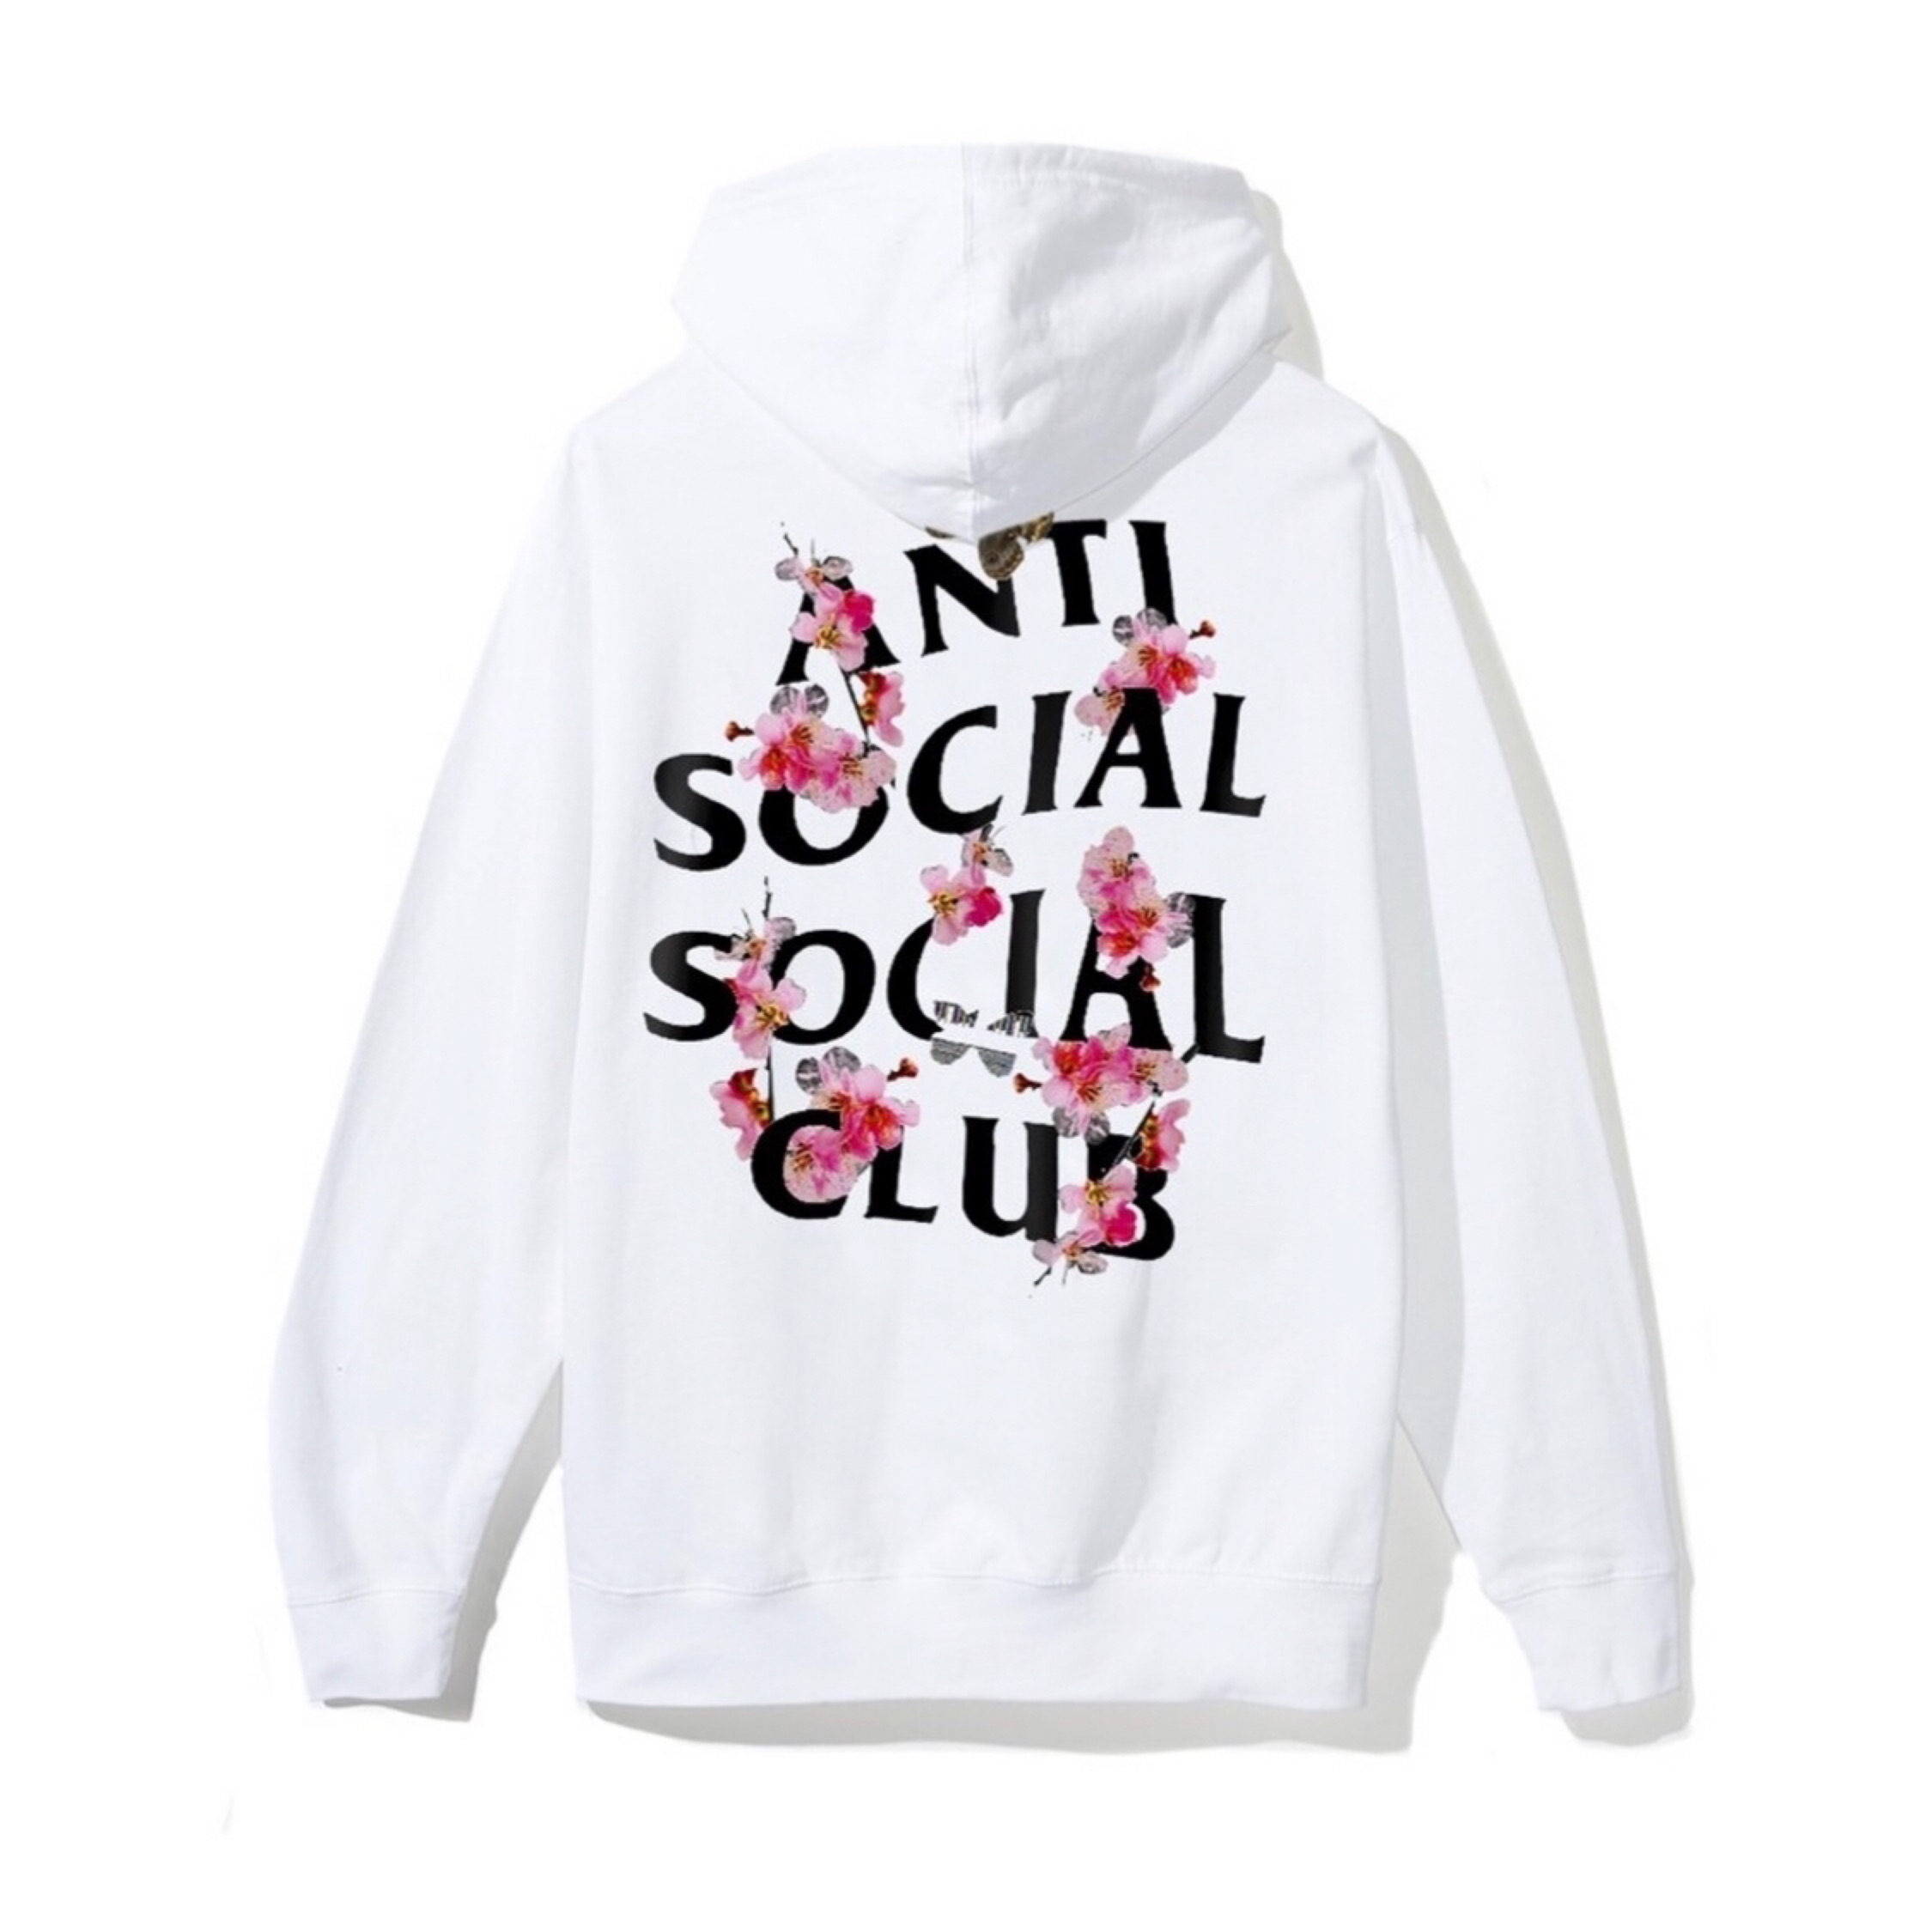 281c47d6f5b6 New Anti Social Social Club Kkoch Hoodie Supreme